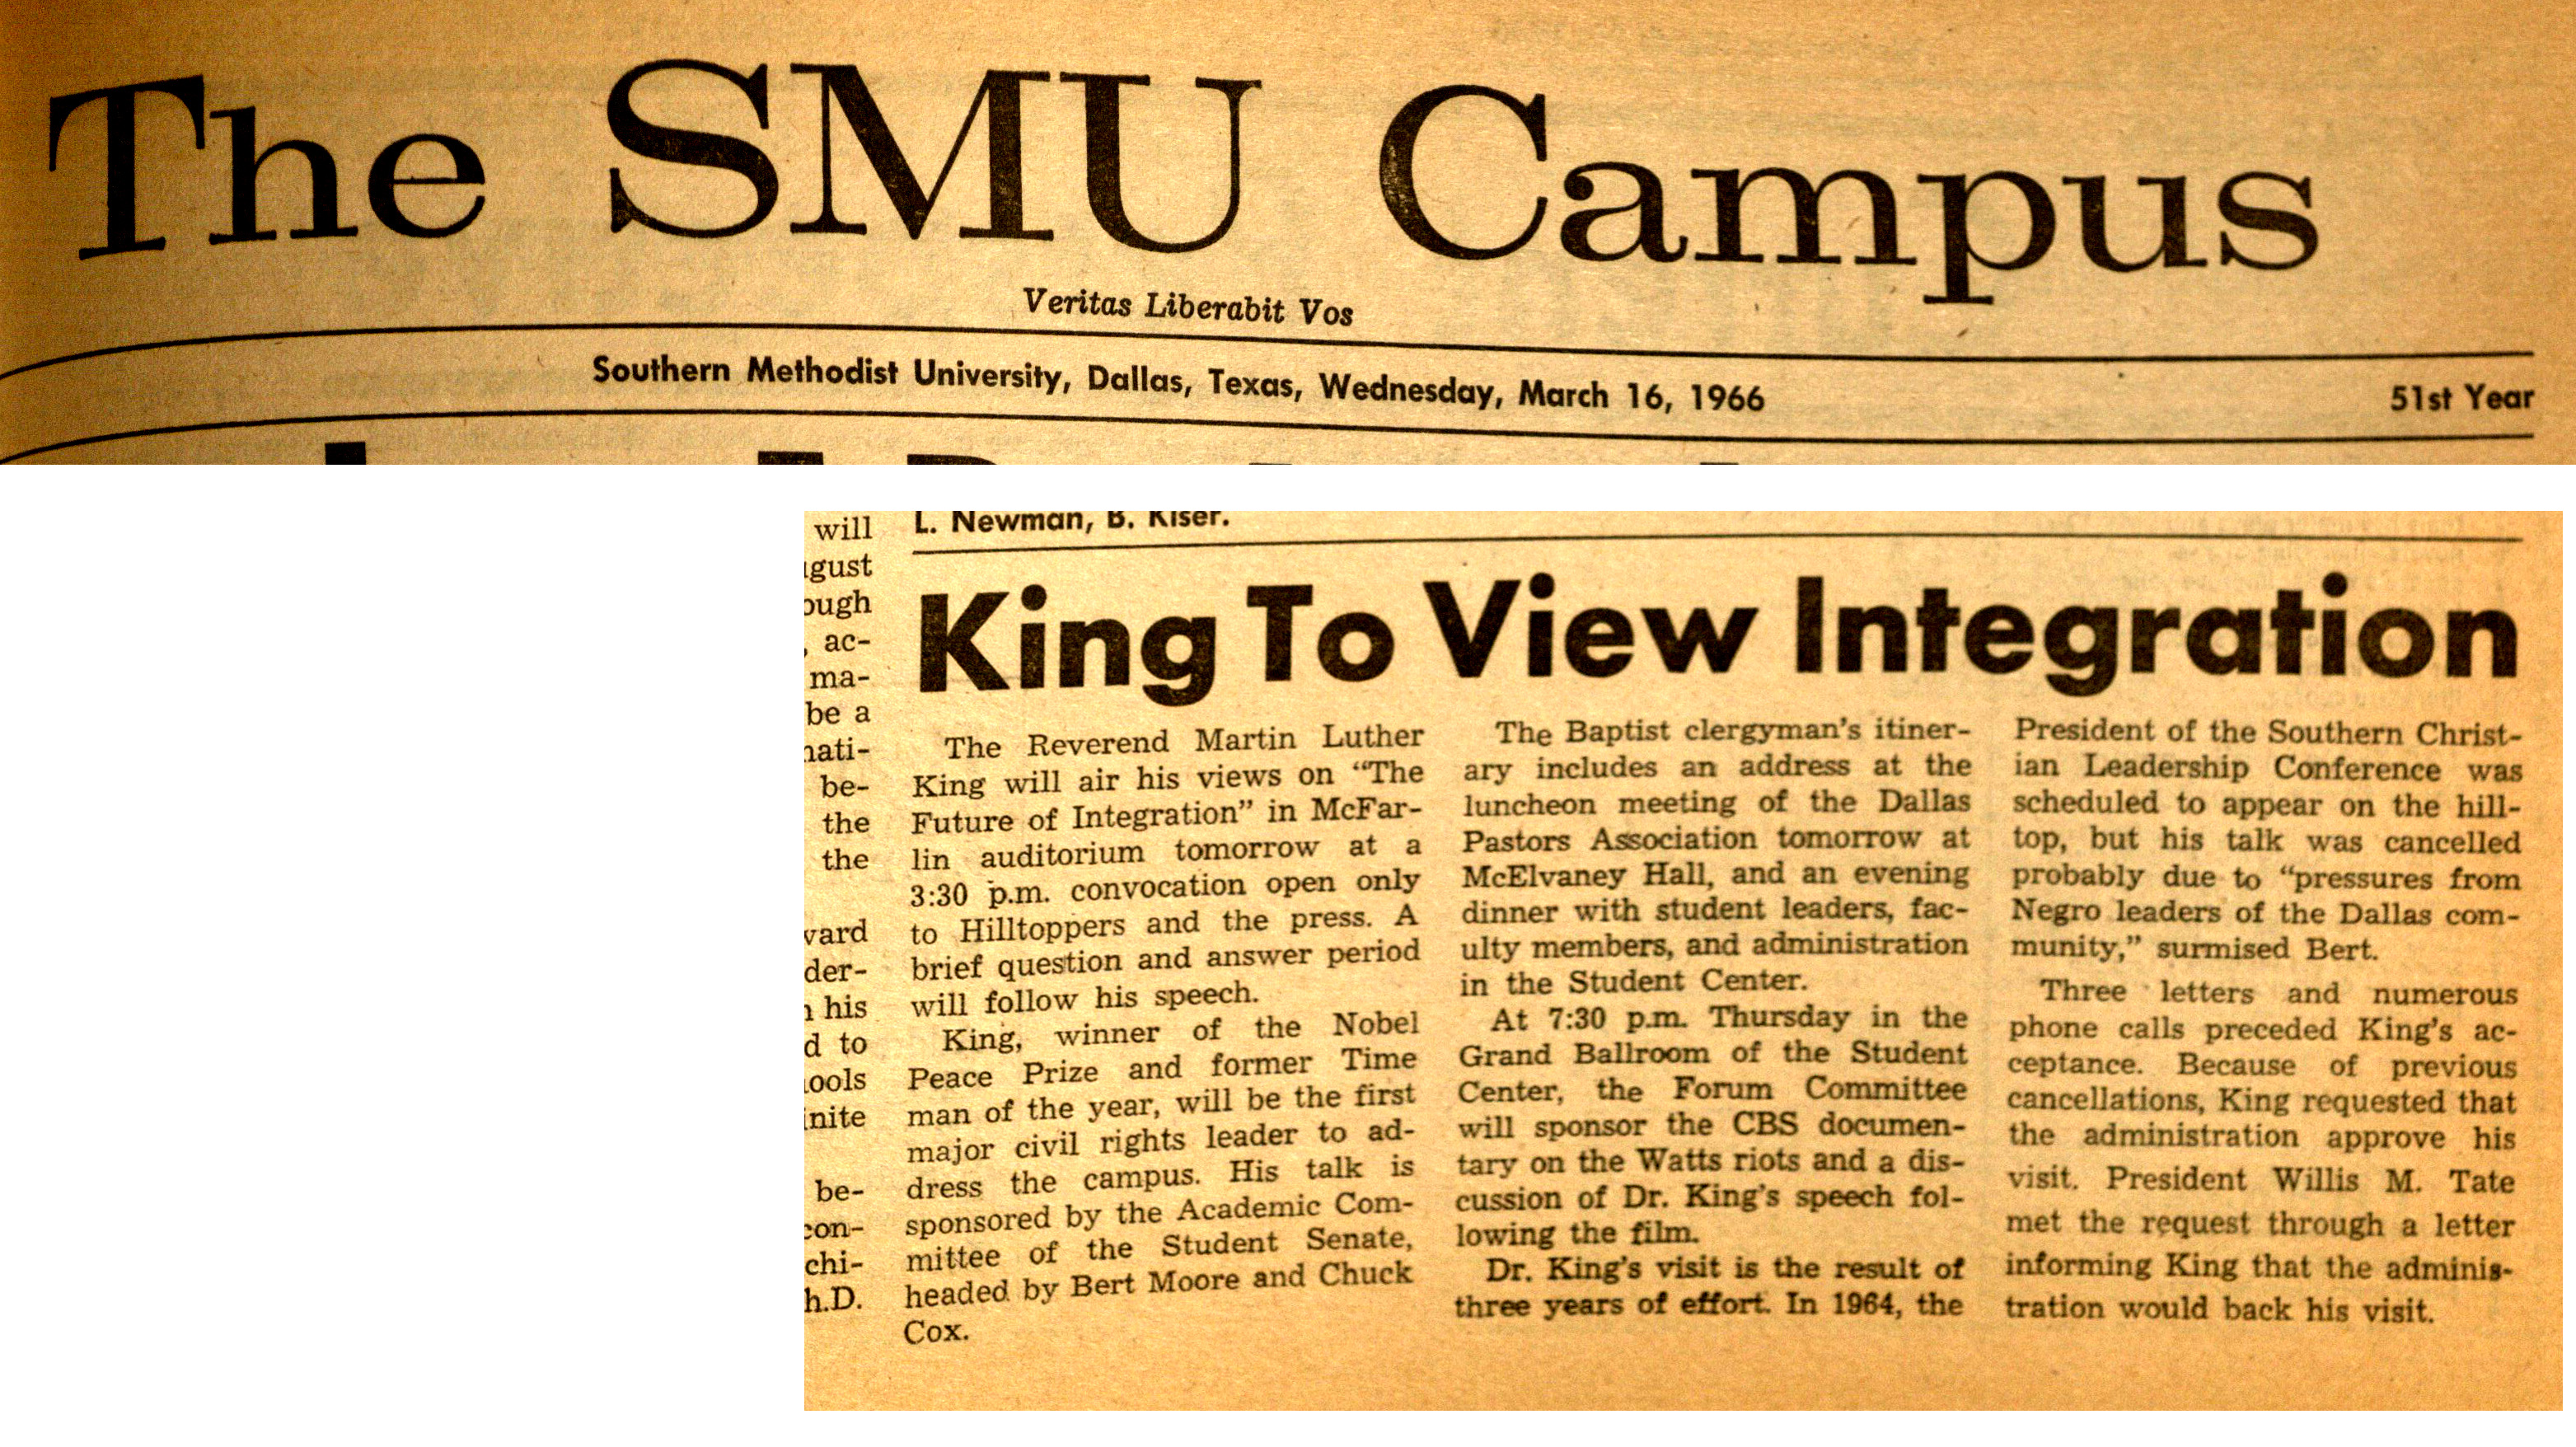 Dr. Martin Luther King Jr. at SMU